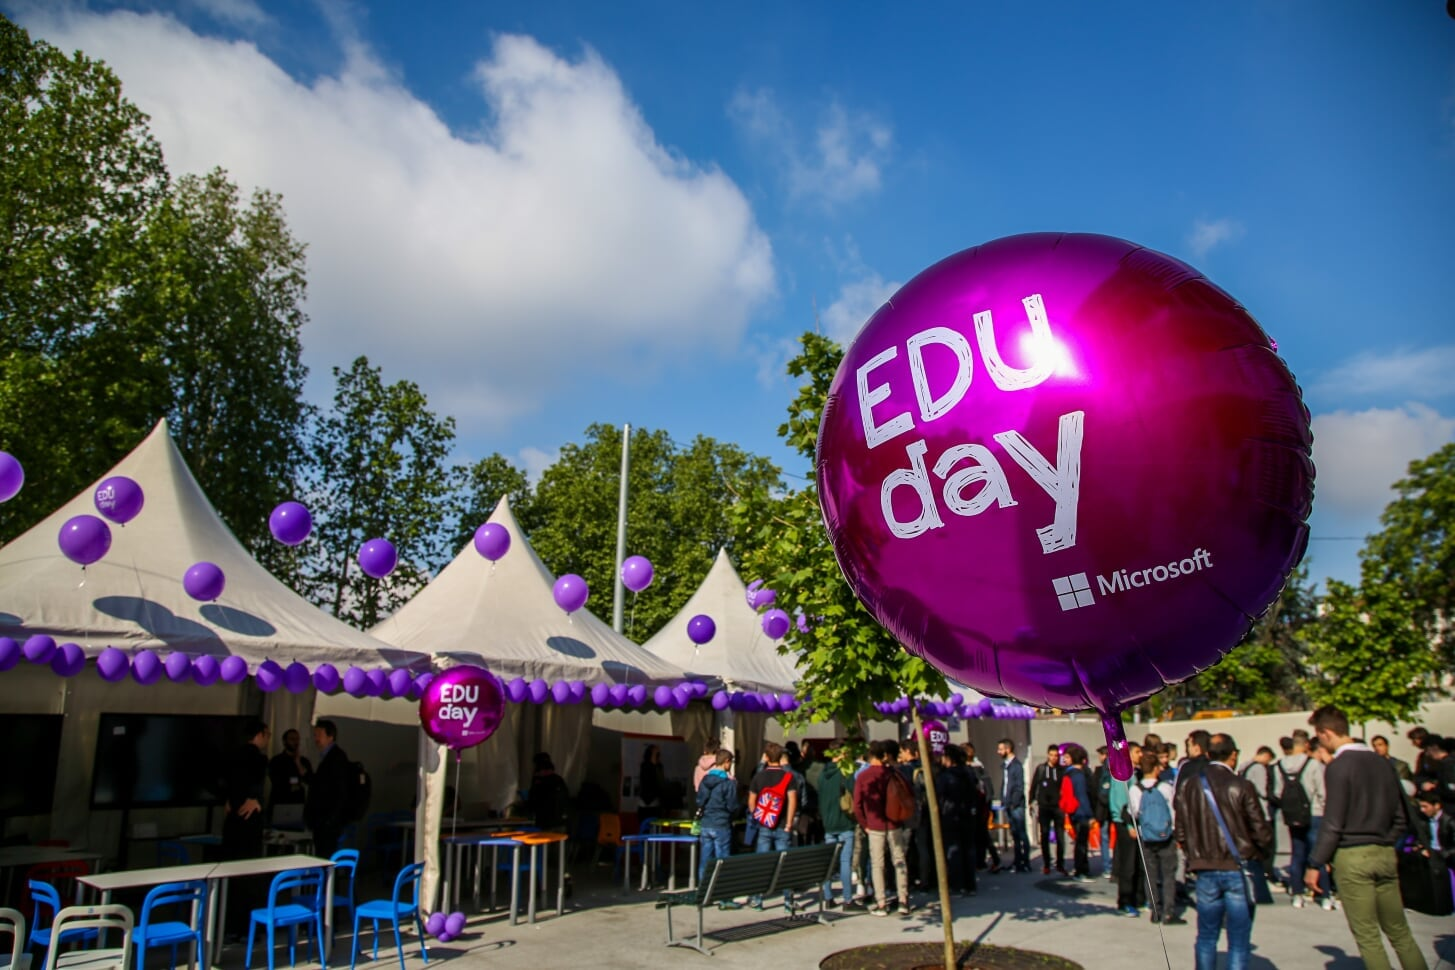 Microsoft Edu Day